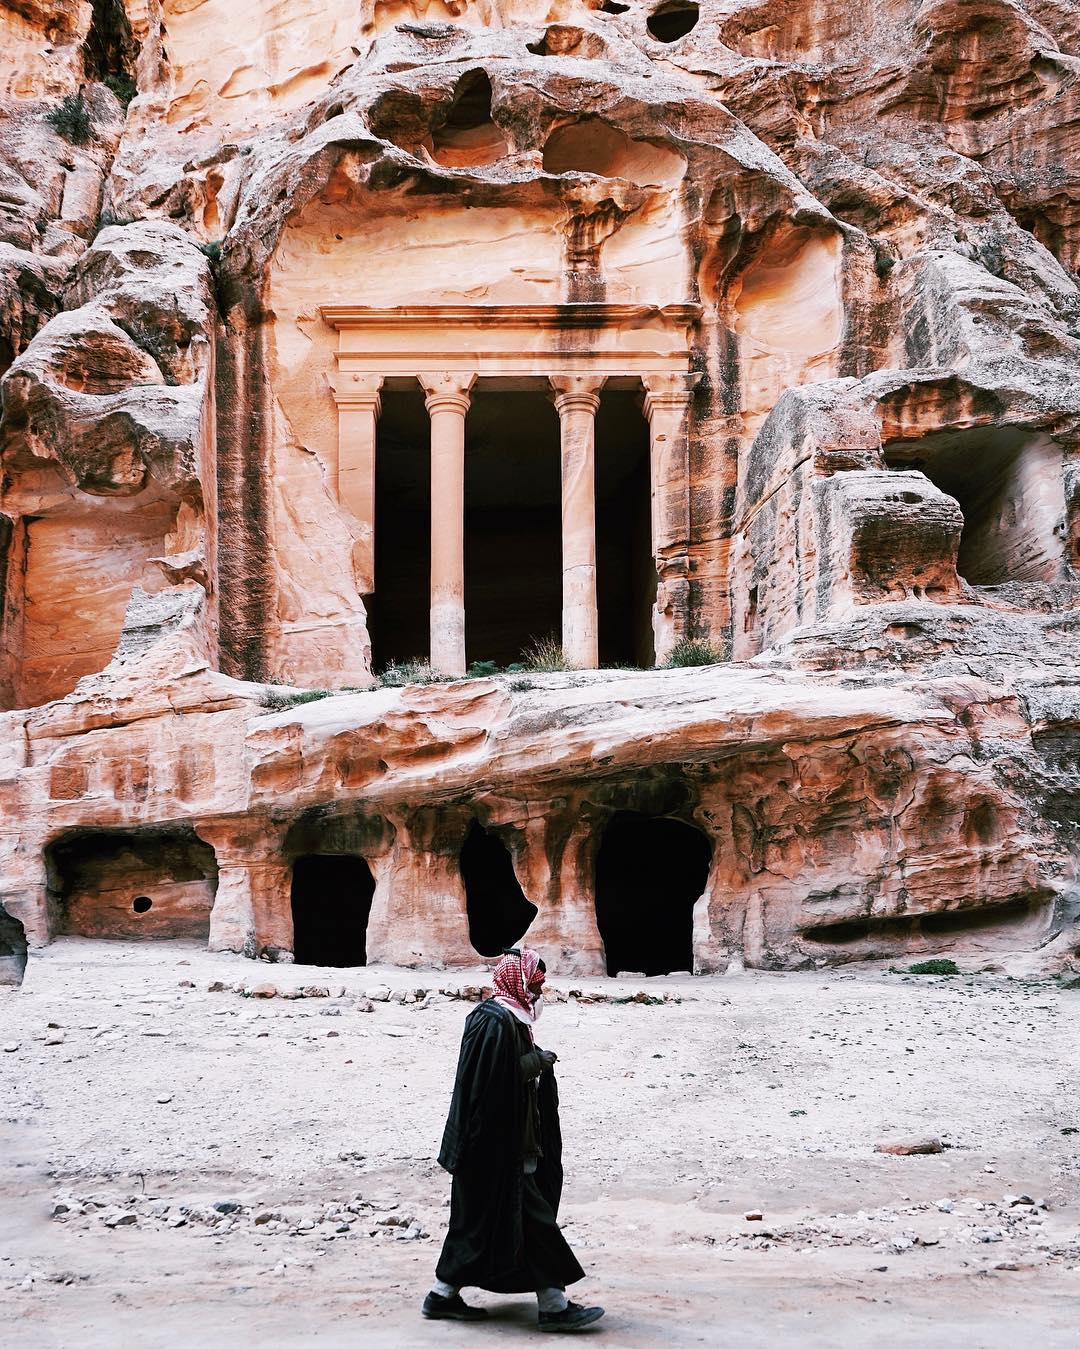 50 The Treasury of Petra and the lowest place on Earth. Jordan, second chapter.